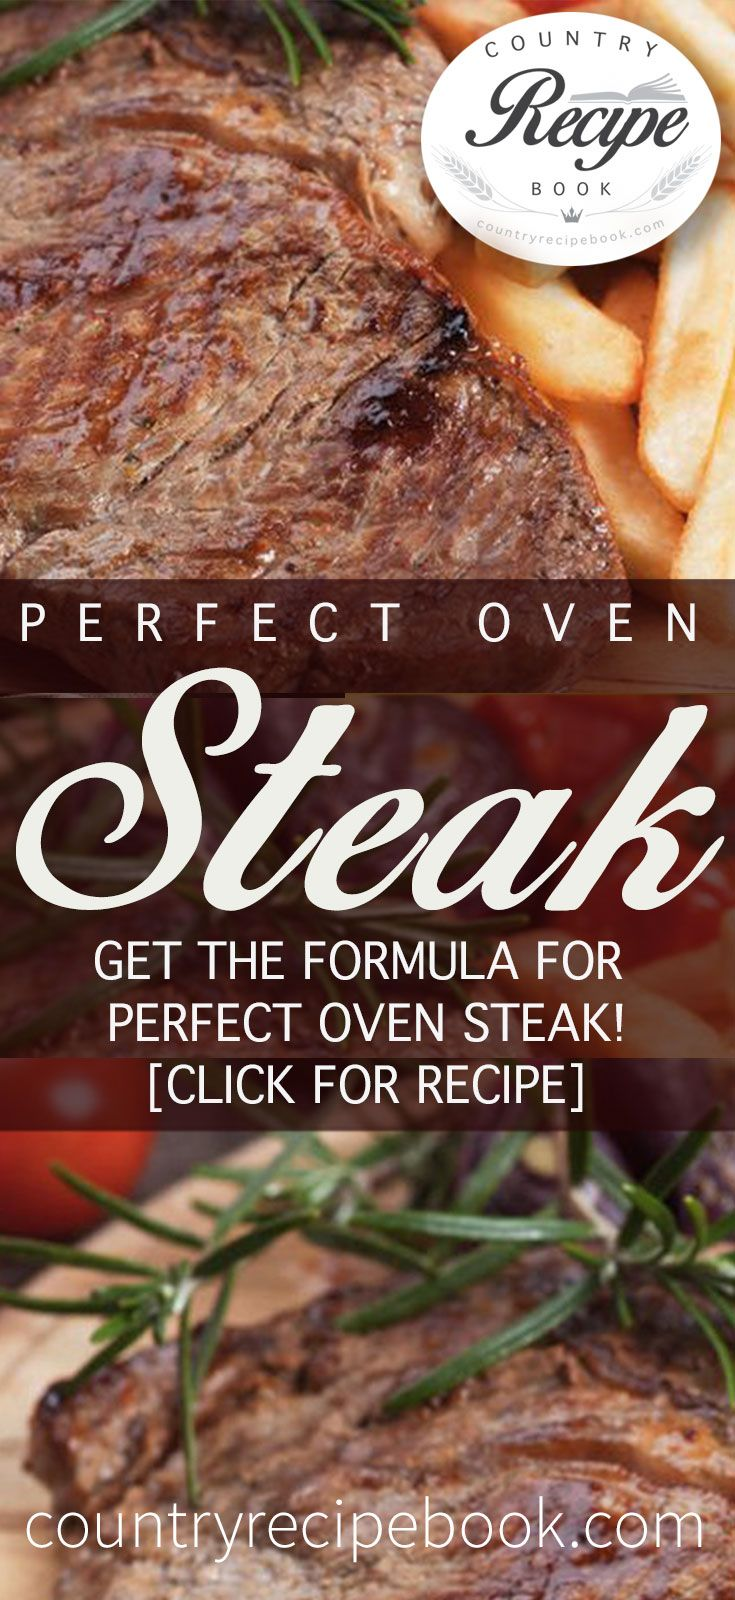 Want to make moist, delicious oven steak? Check out this tasty recipe